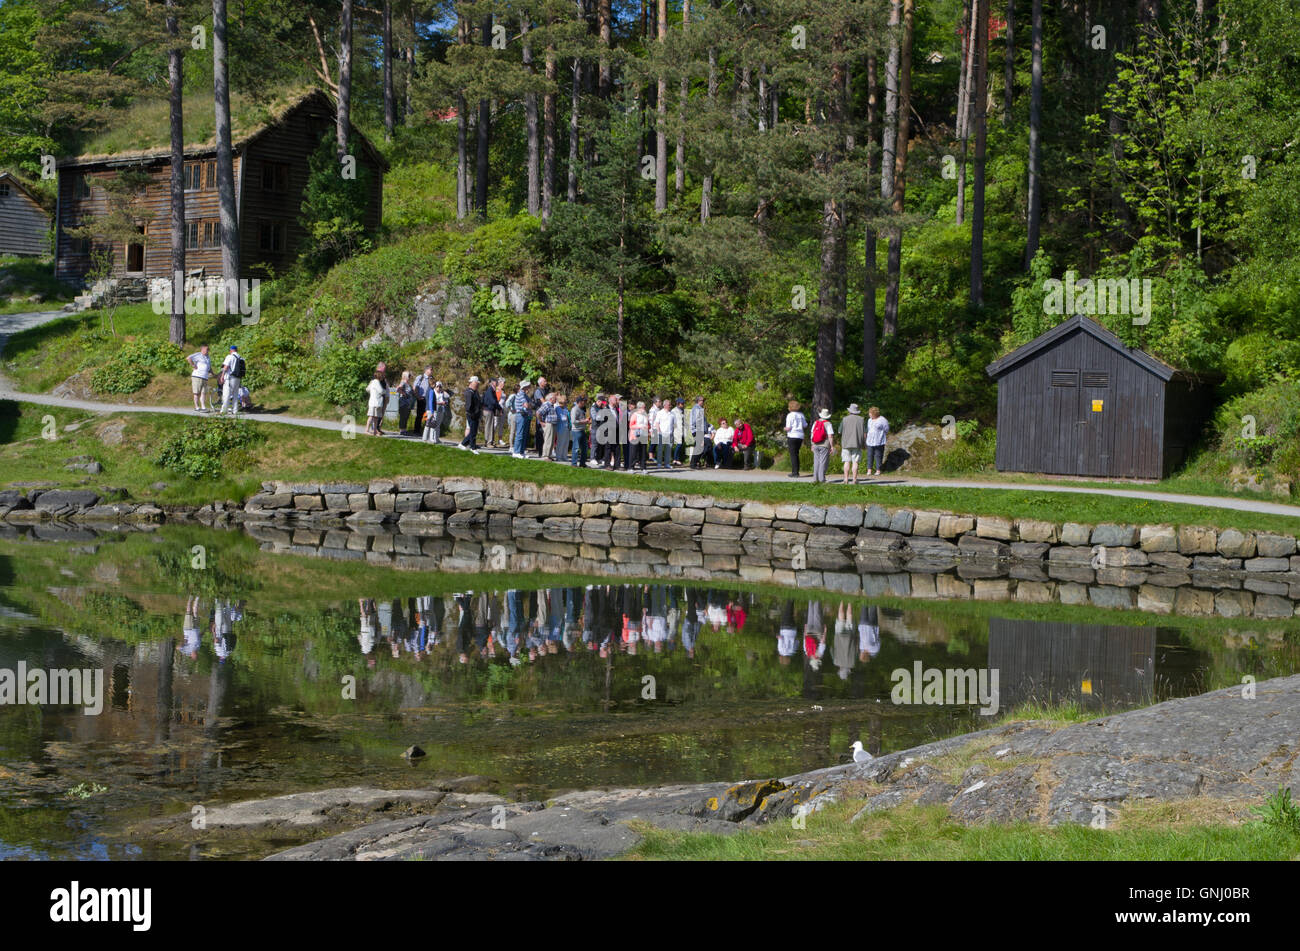 A party of visitors on a guided tour of Sunnmore Museum, Alesund, Norway - Stock Image